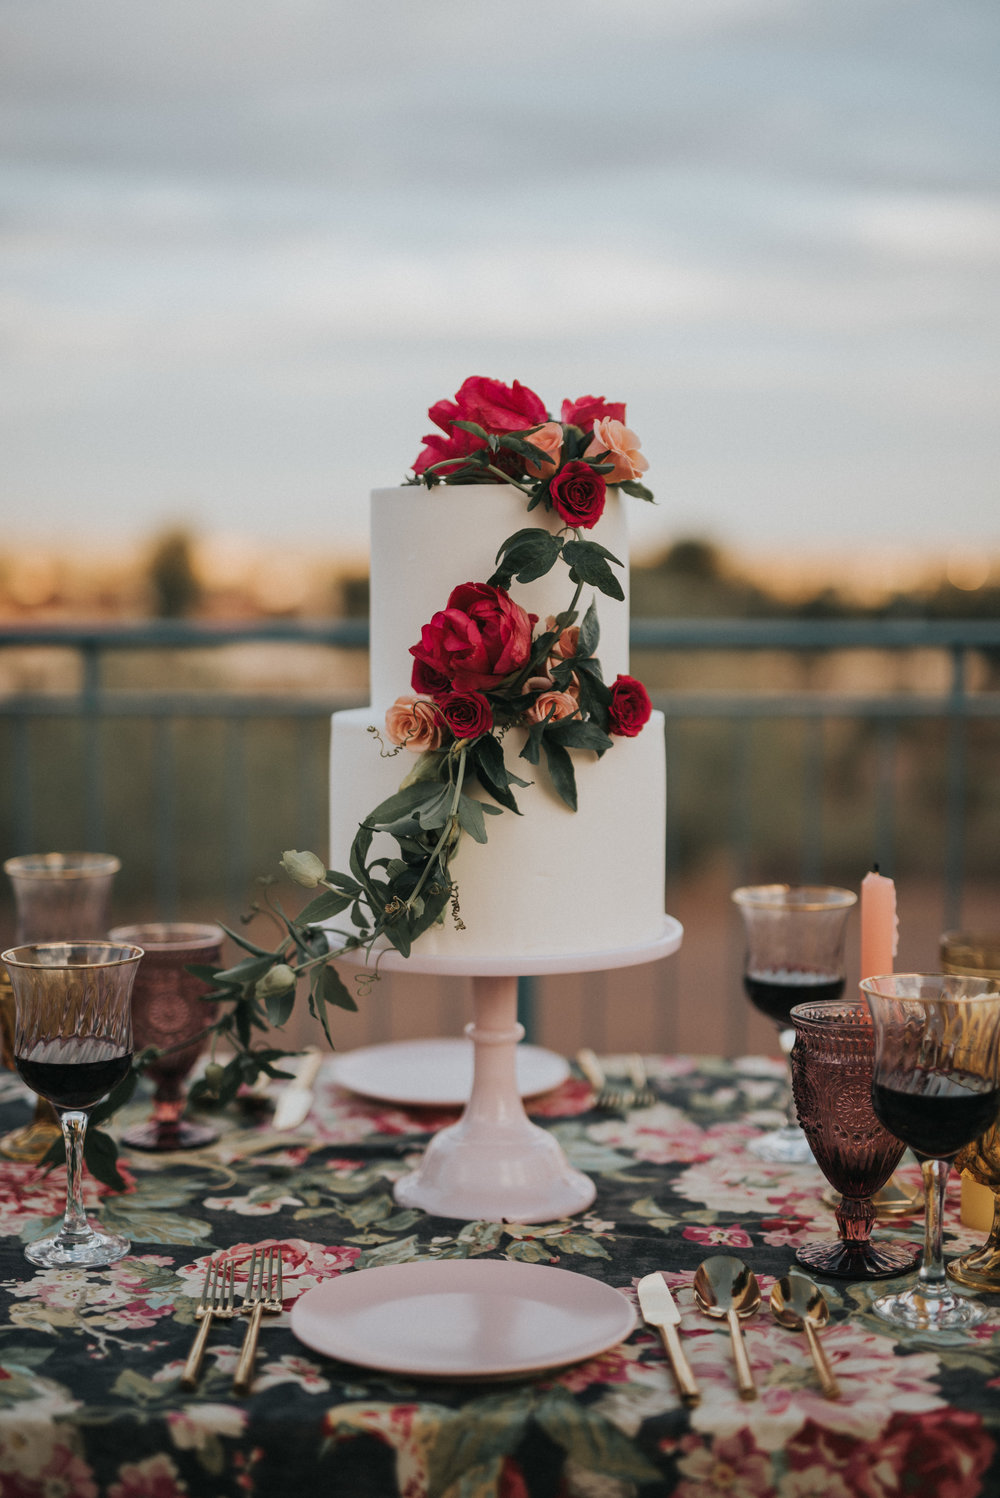 Frida Kahlo Inspired Wedding - Cake